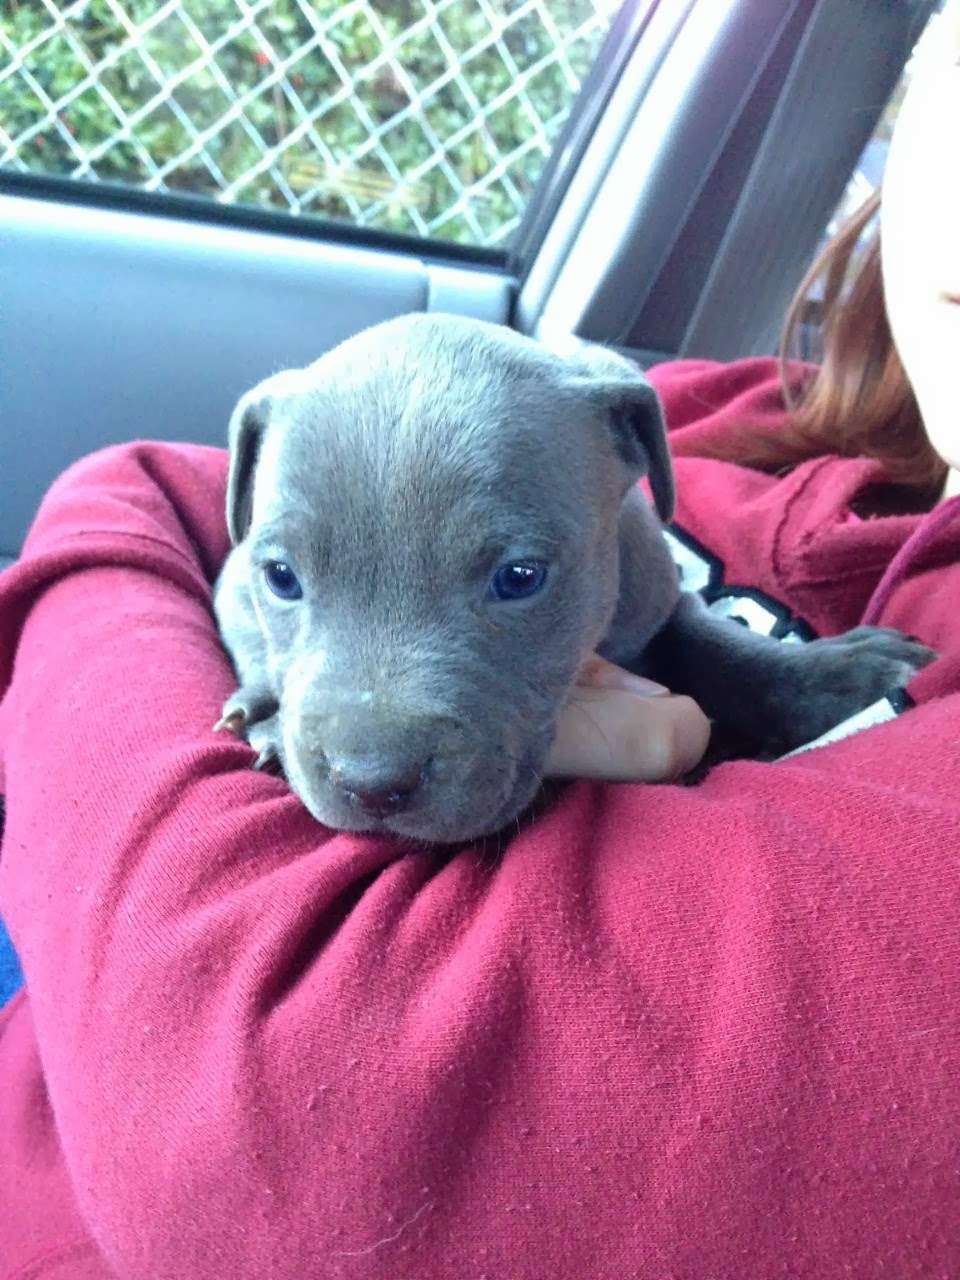 Cute dogs - part 9 (50 pics), girl holds pitbull puppy